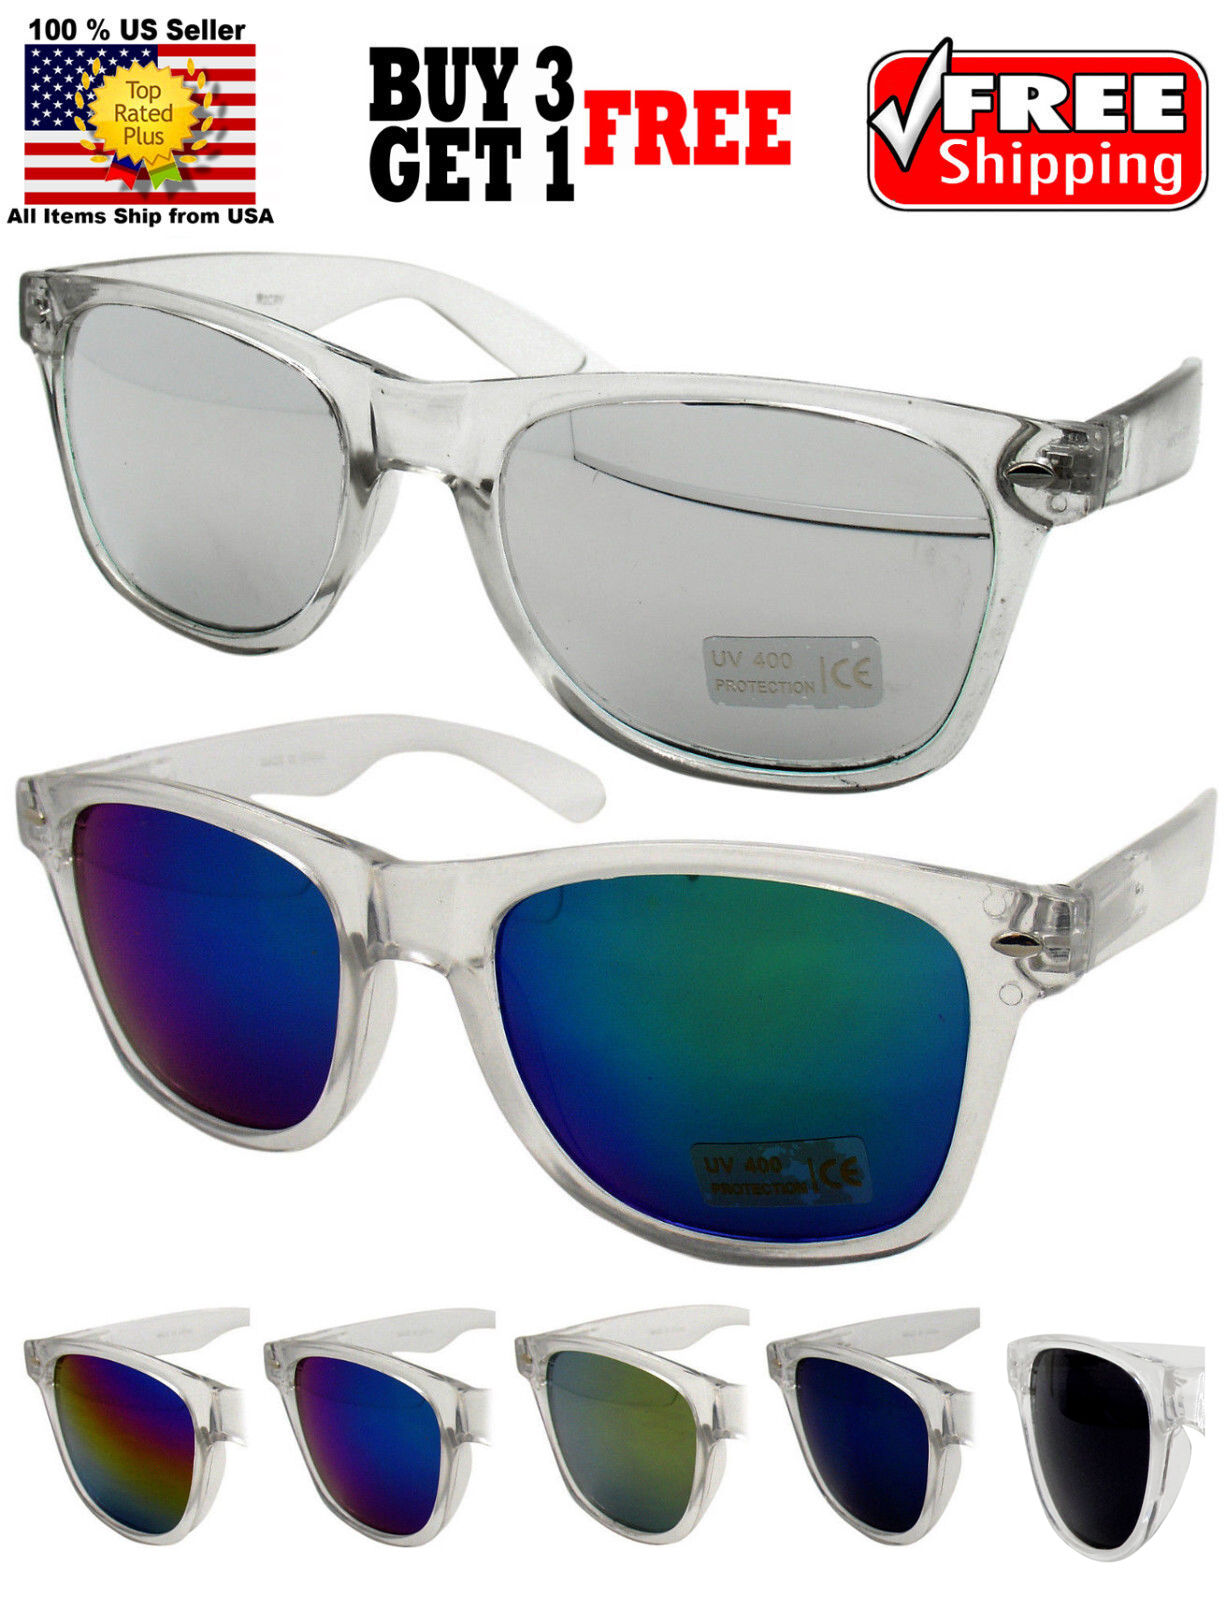 CLEAR FRAME CLASSIC RETRO VINTAGE DESIGNER RV MIRROR LENS SUNGLASSES SHADES Clothing, Shoes & Accessories